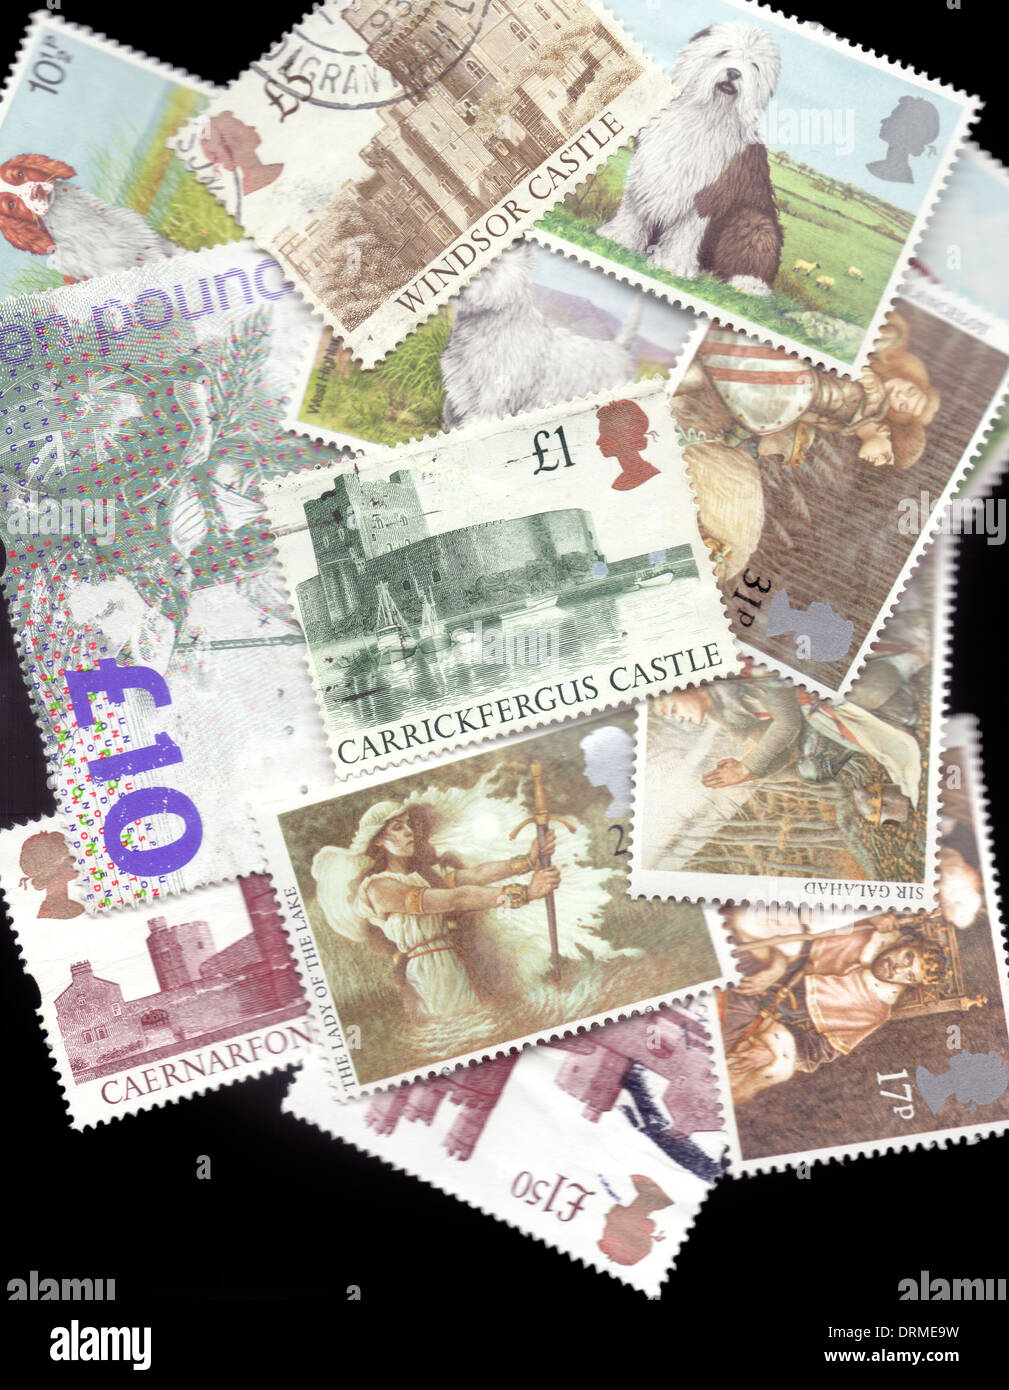 Britain UK Selection of various used British Royal Mail postage stamps close-up - Stock Image